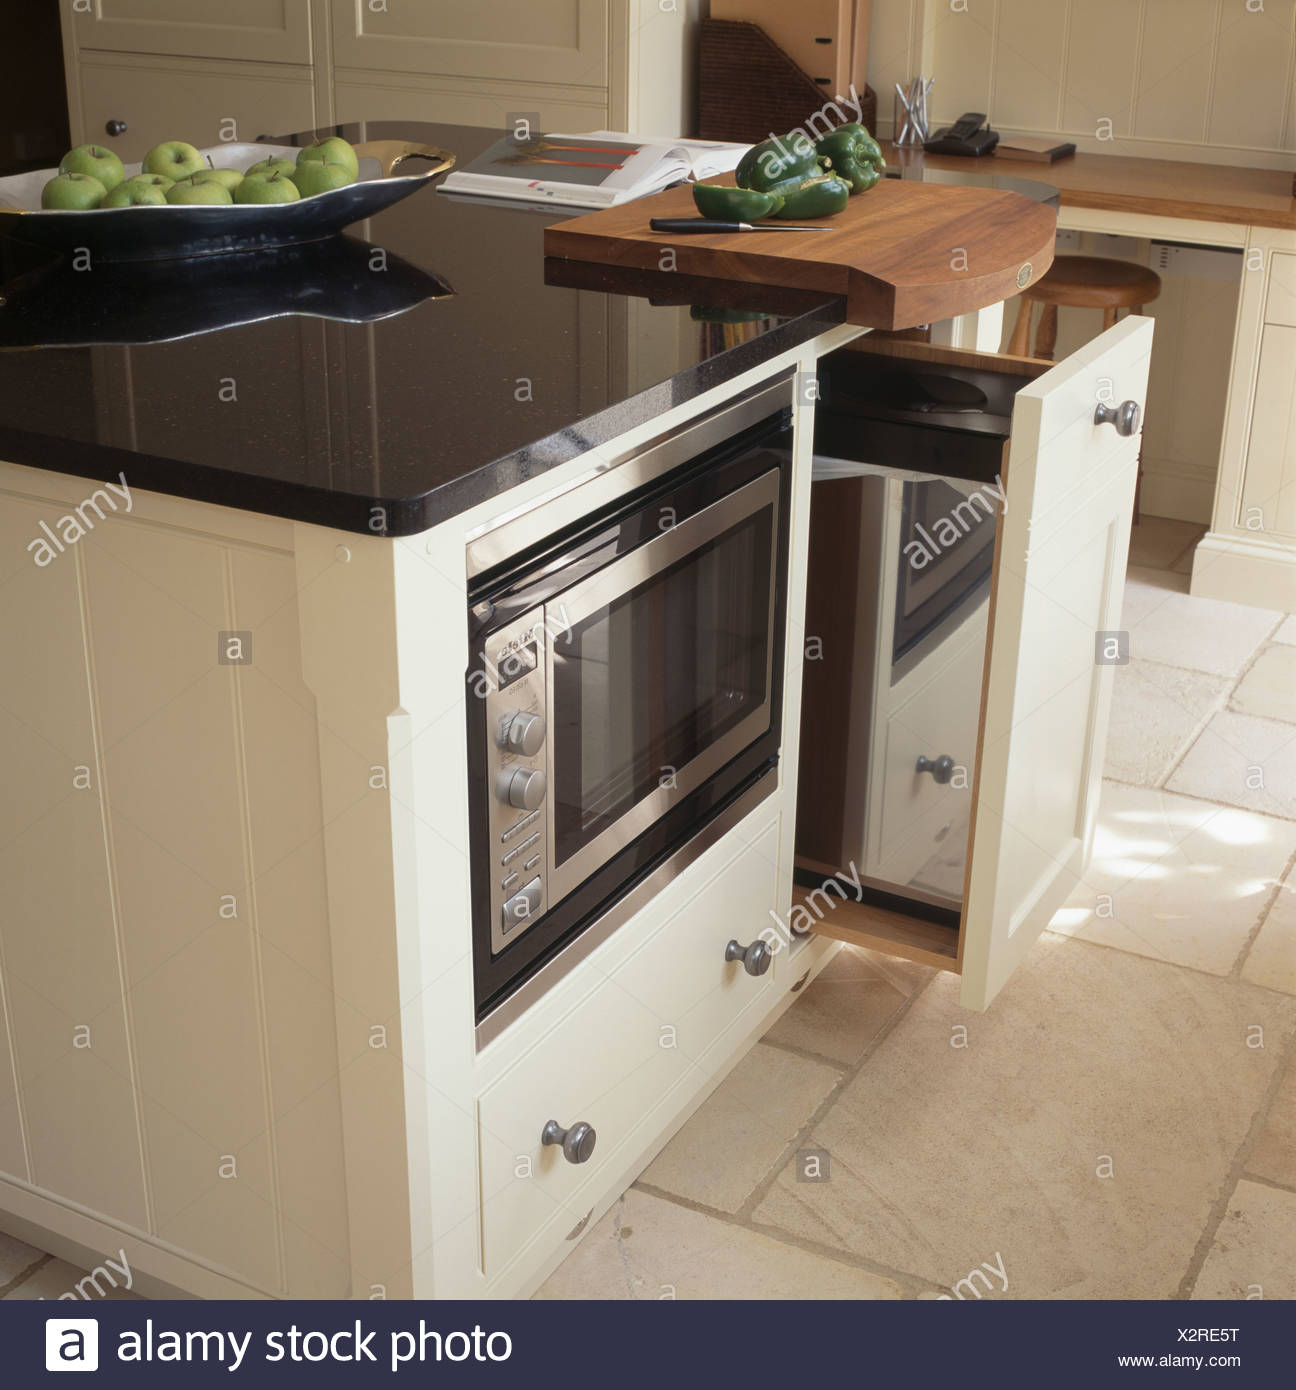 https www alamy com pull out waste bin in granite topped island unit with fitted microwave oven image277111236 html